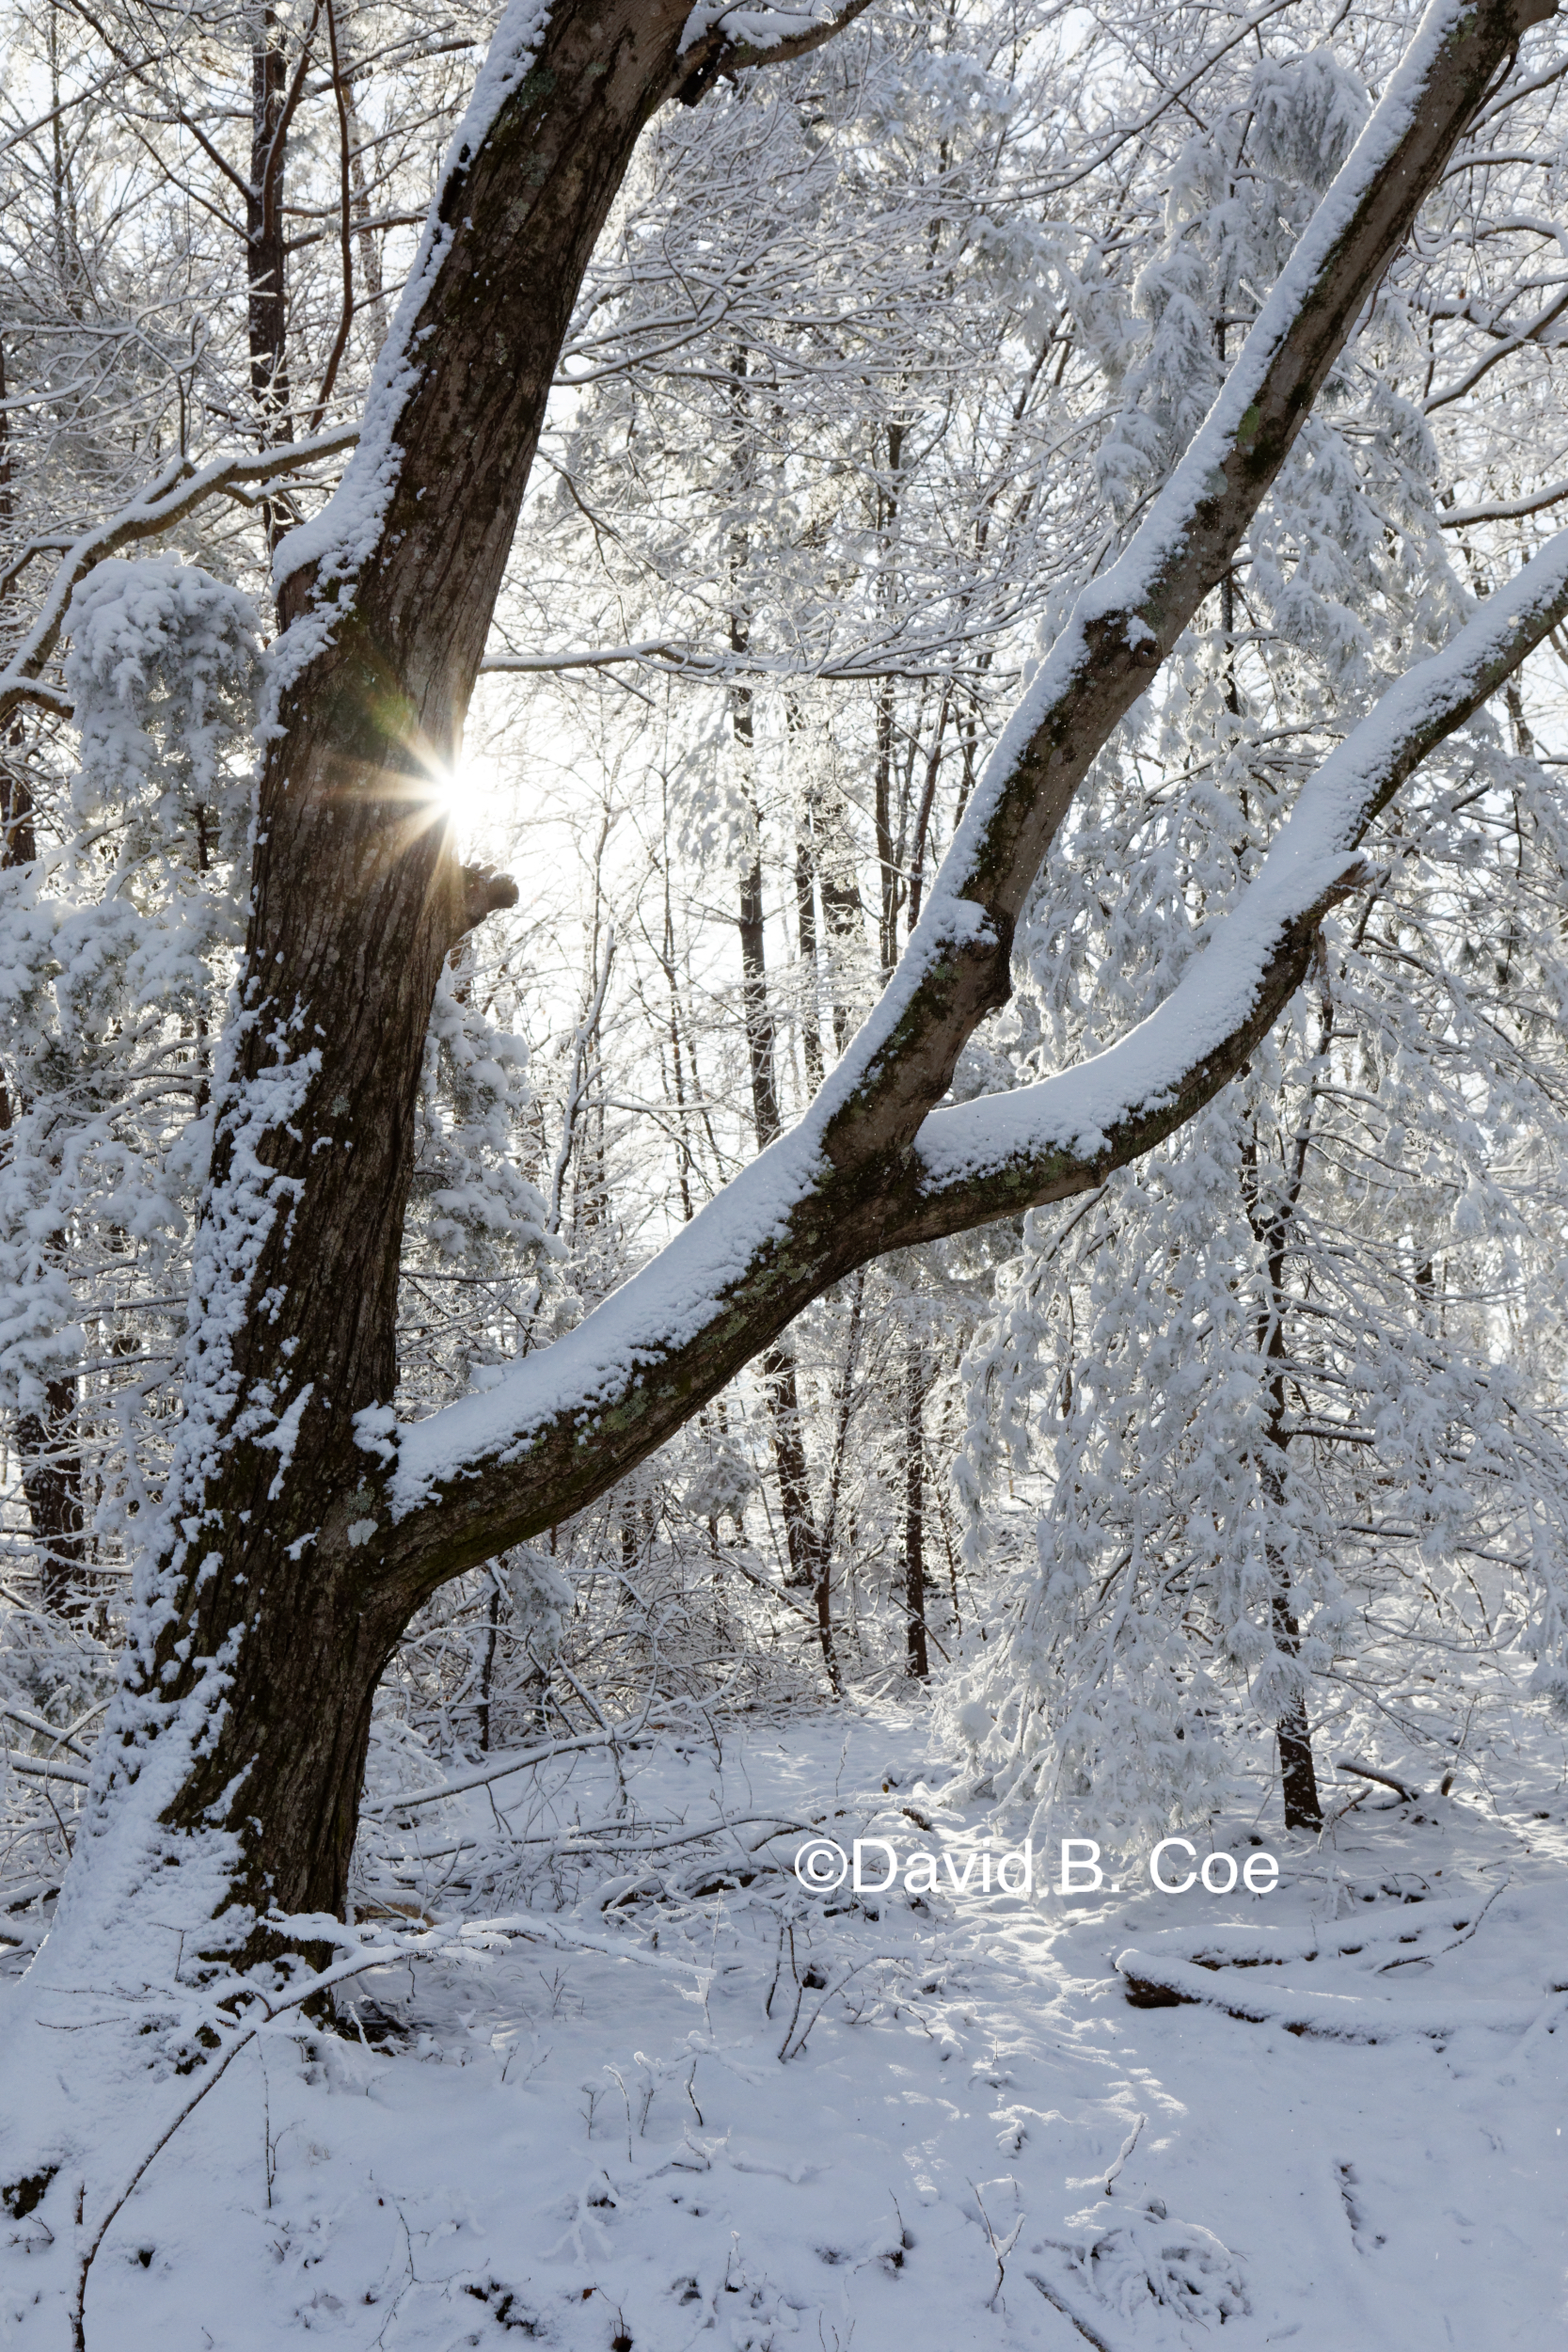 Snow and Morning Sun, by David B. Coe